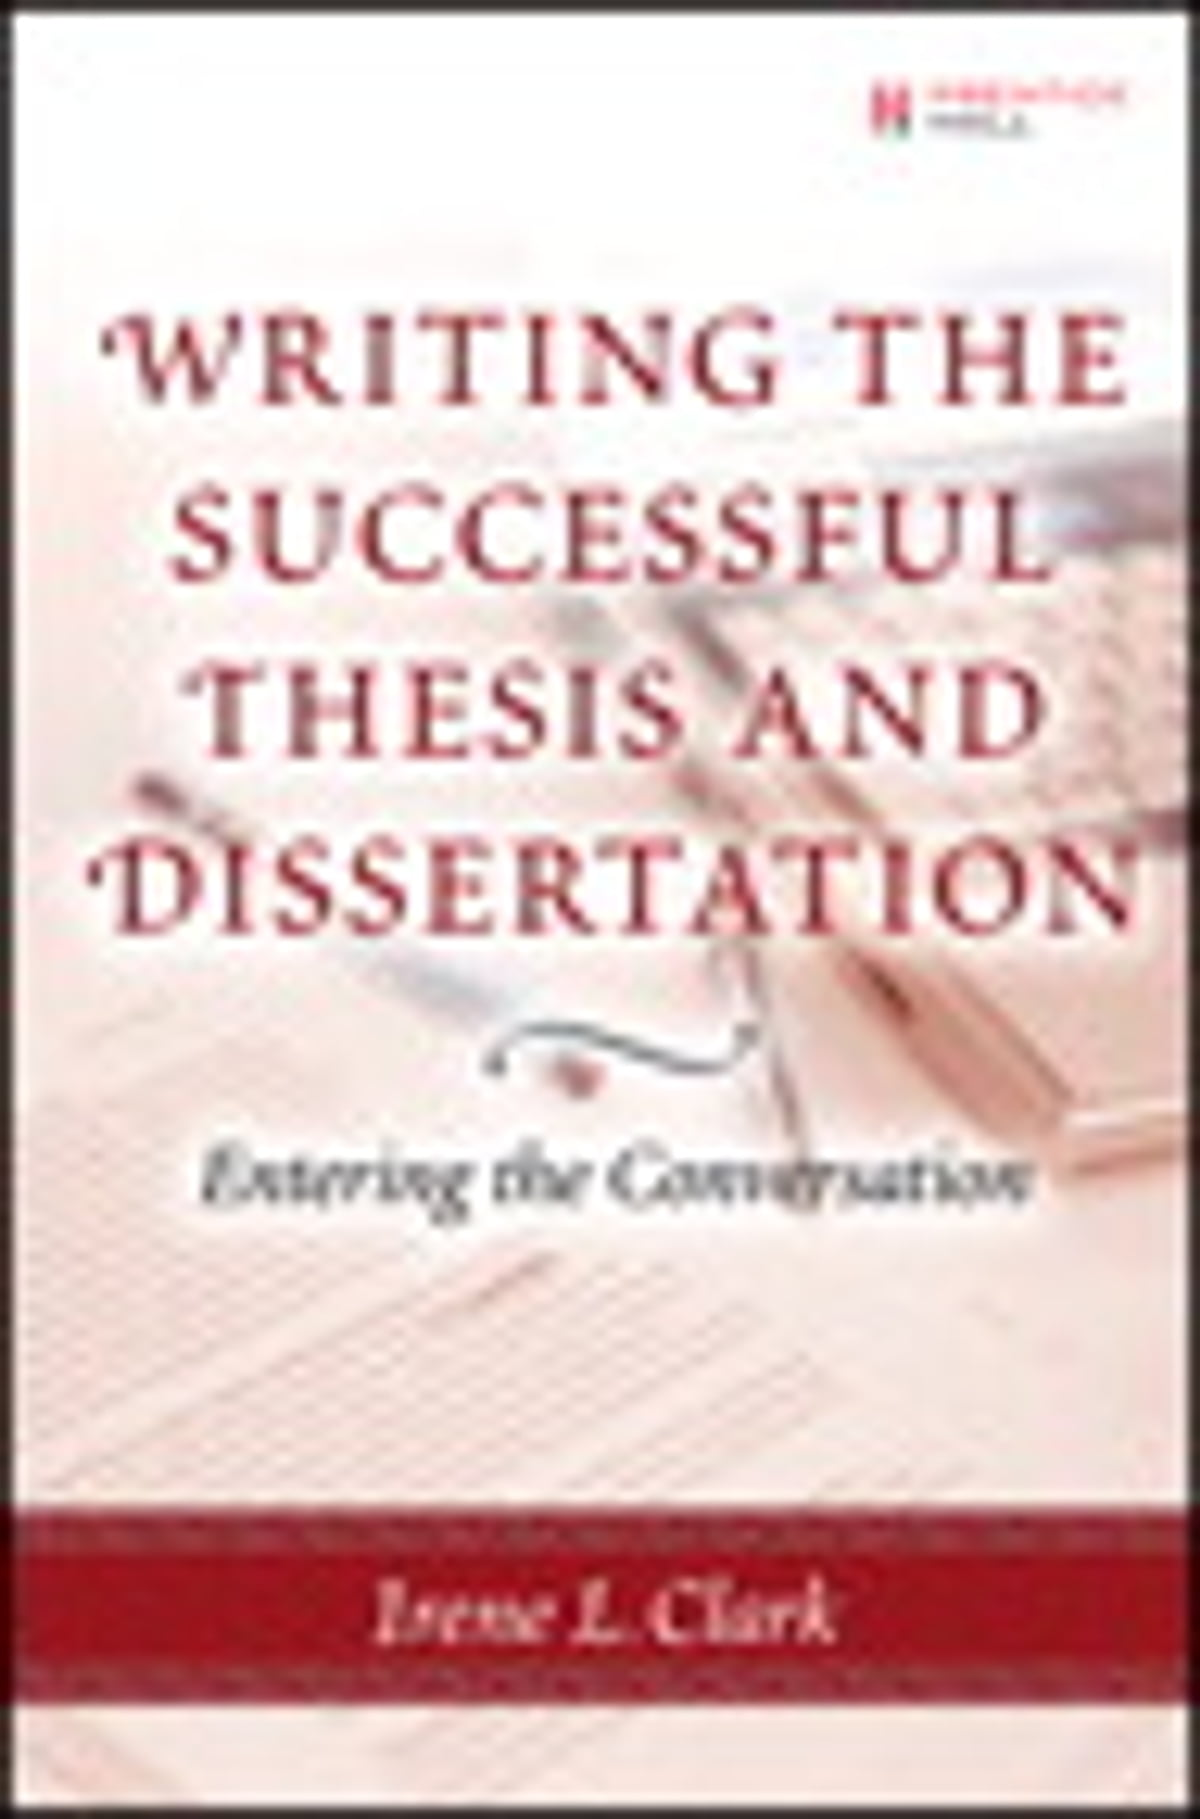 Writing the Successful Thesis and Dissertation: Entering the Conversation  eBook di Irene L. Clark - 9780132797306 | Rakuten Kobo